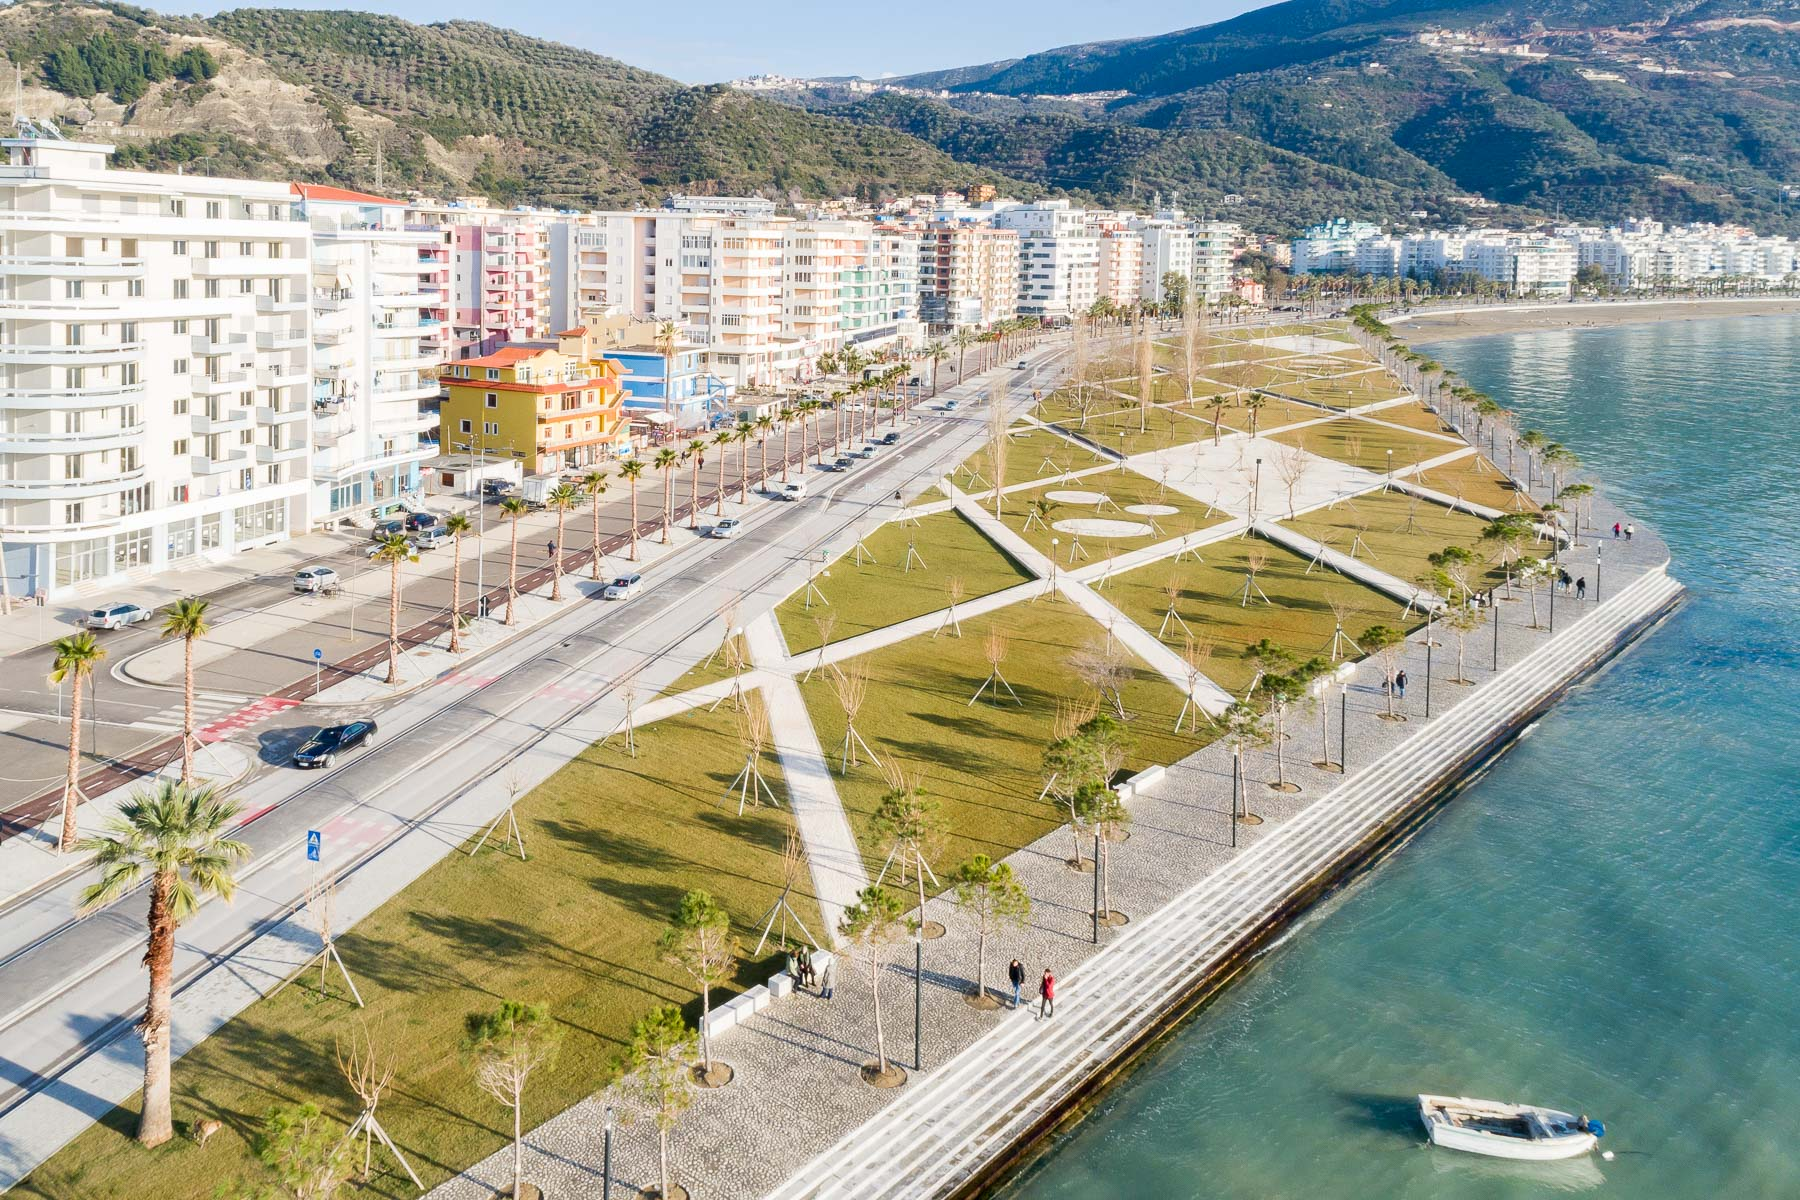 XDGA - Vlora Waterfront